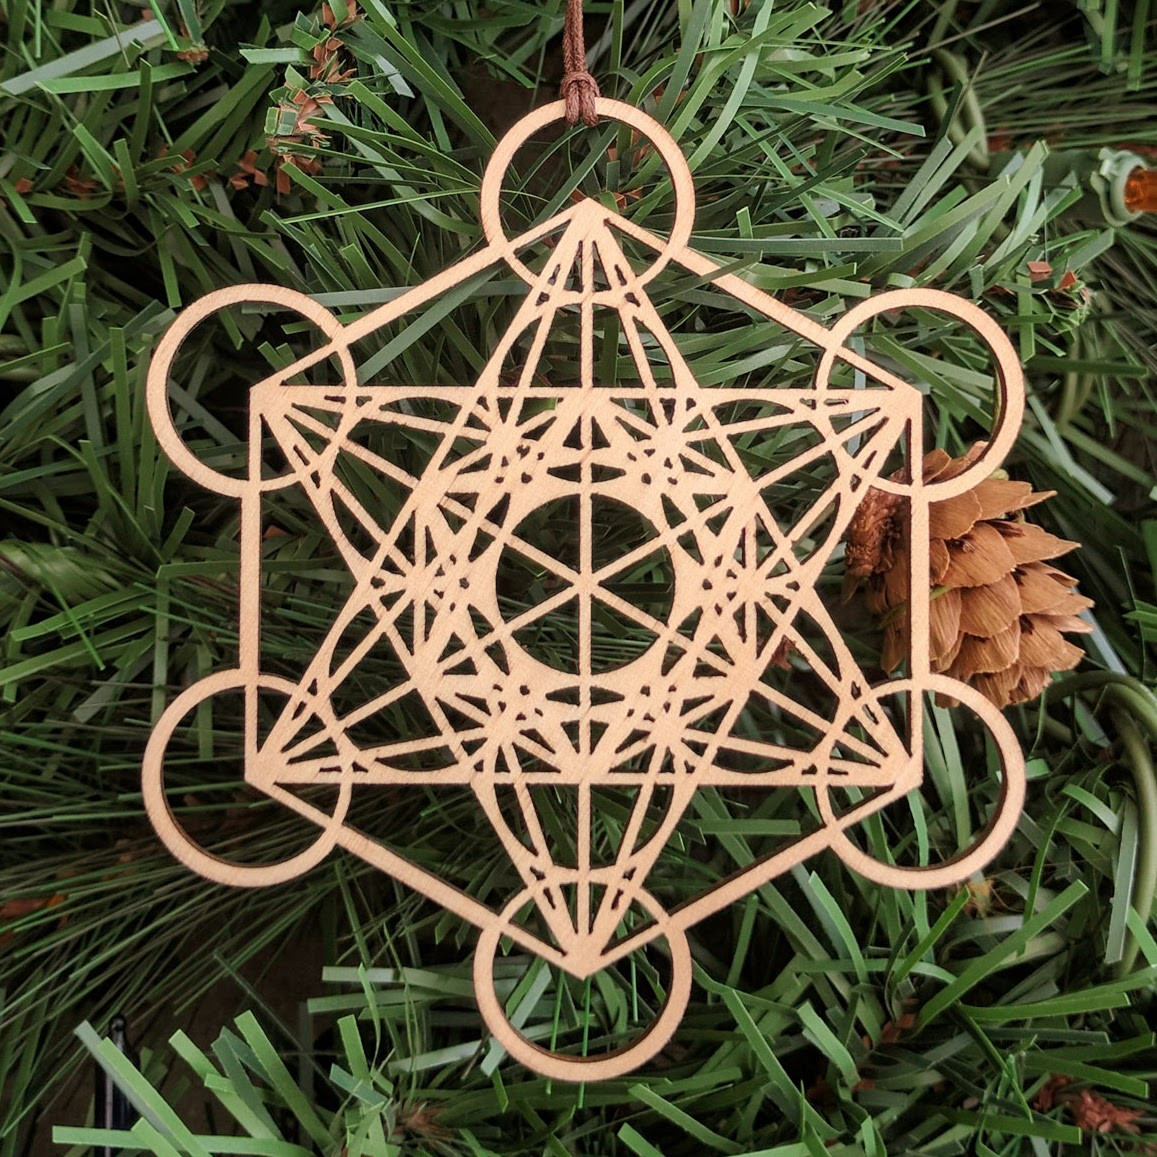 Metatron S Cube Holiday Ornament Sacred Geometry Laser Cut Wood